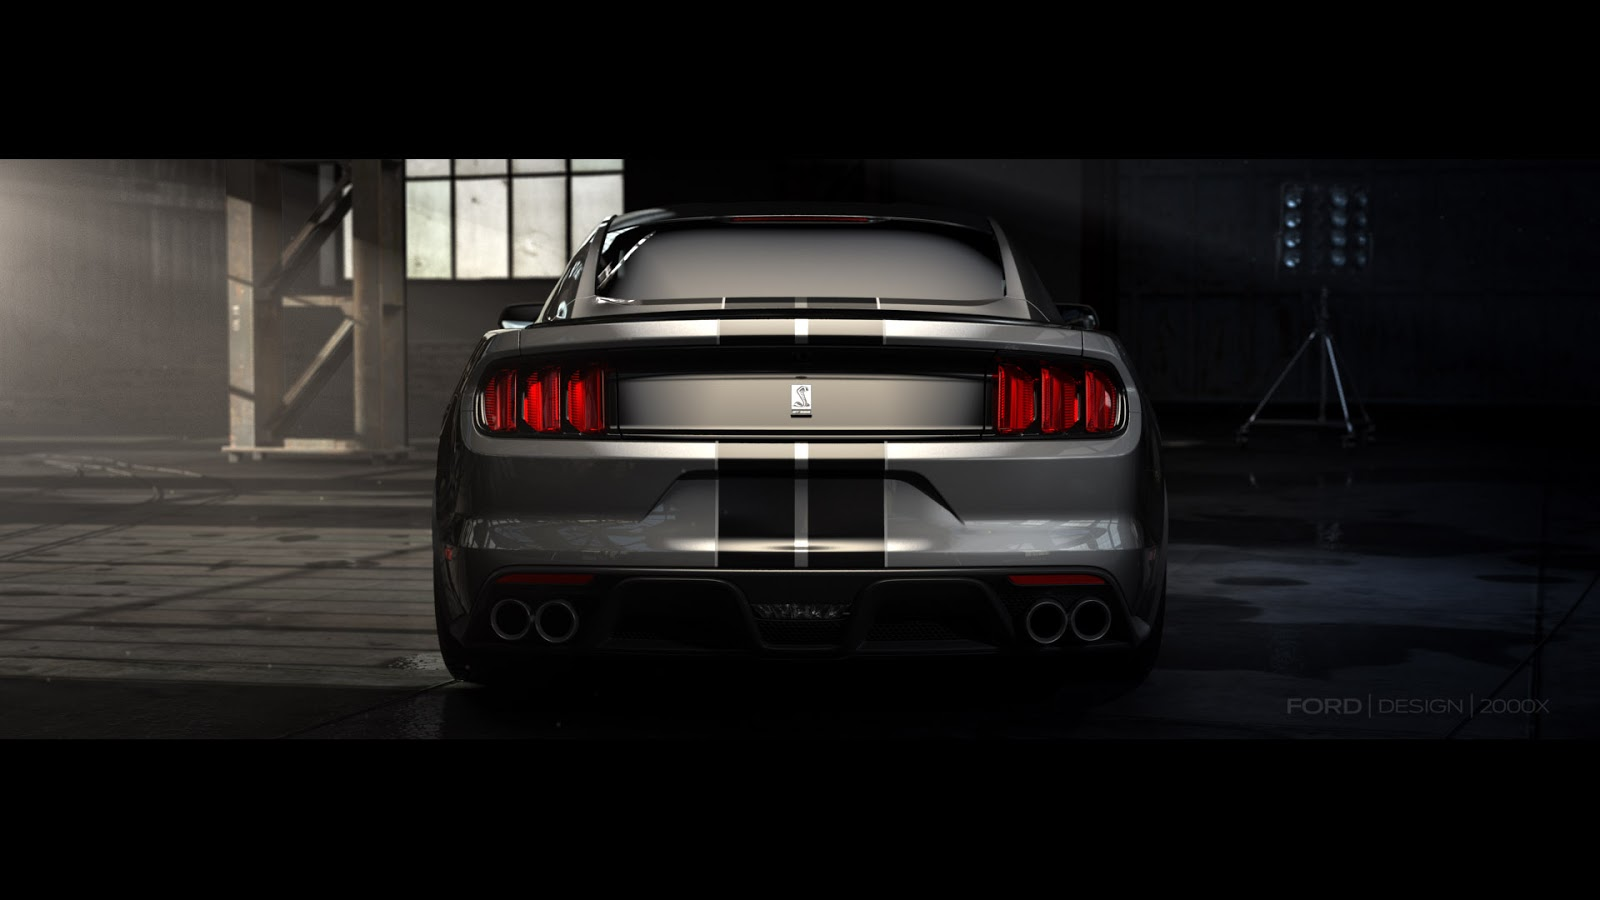 New 2016 Ford Mustang Shelby GT350 Has More Than 500HP [w/Video]   Carscoops